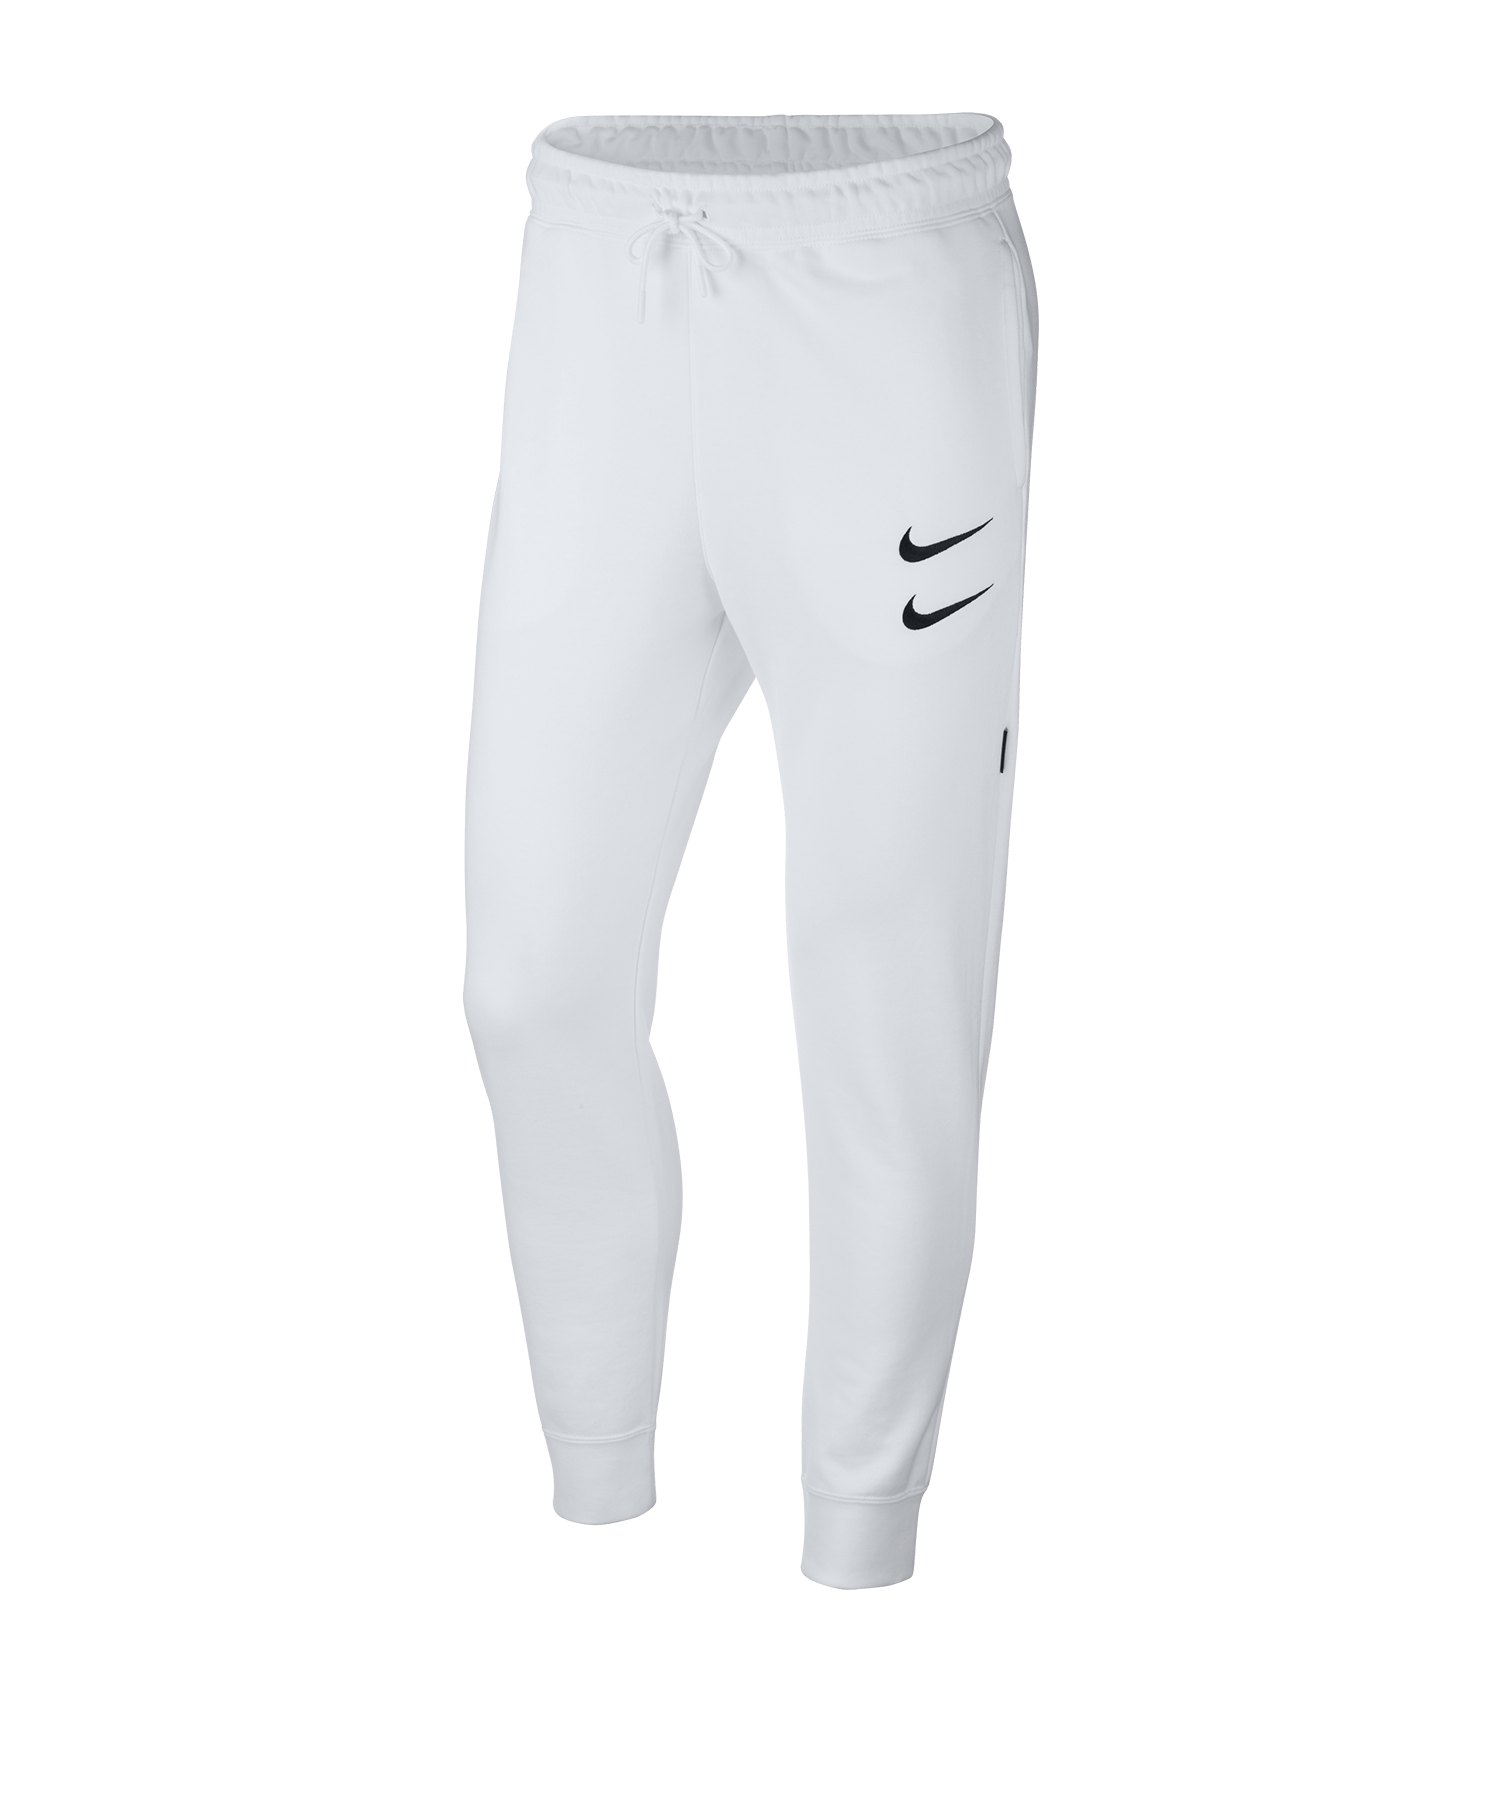 Nike Swoosh French Terry Jogginghose Weiss F100 - weiss